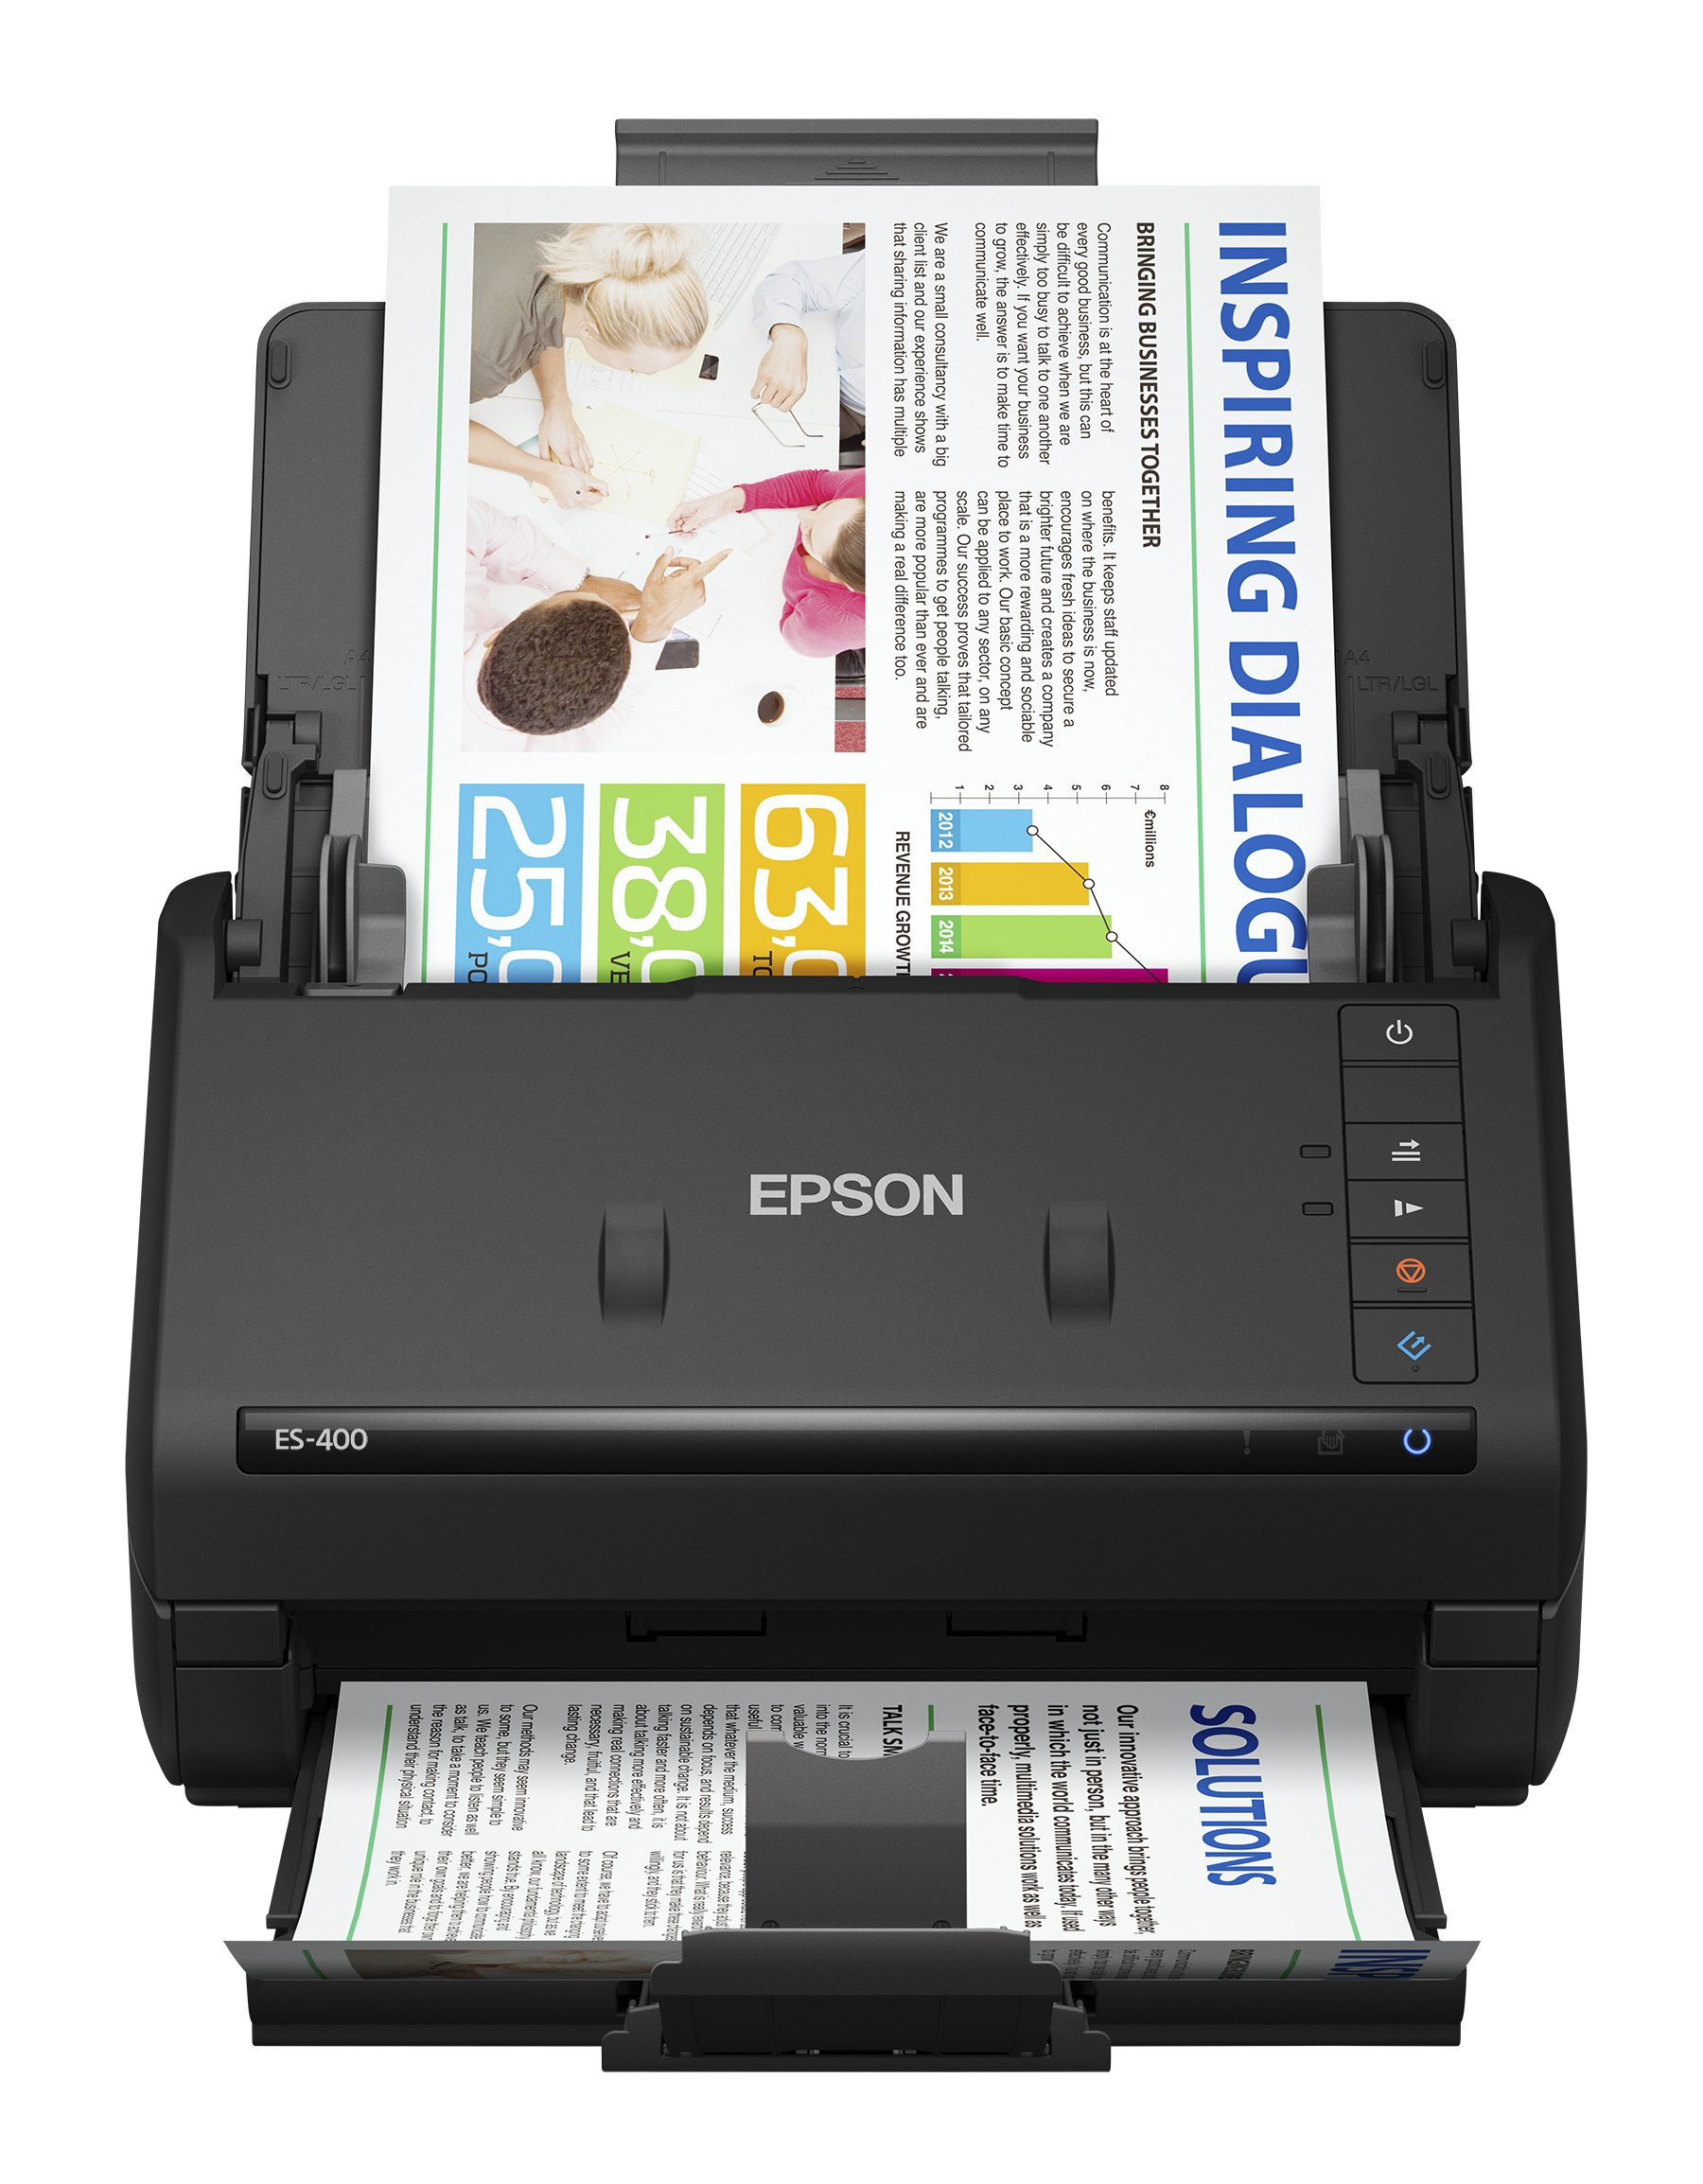 Epson WorkForce ES-400 Color Duplex Document Scanner for PC and Mac, Auto Document Feeder (ADF) by Epson